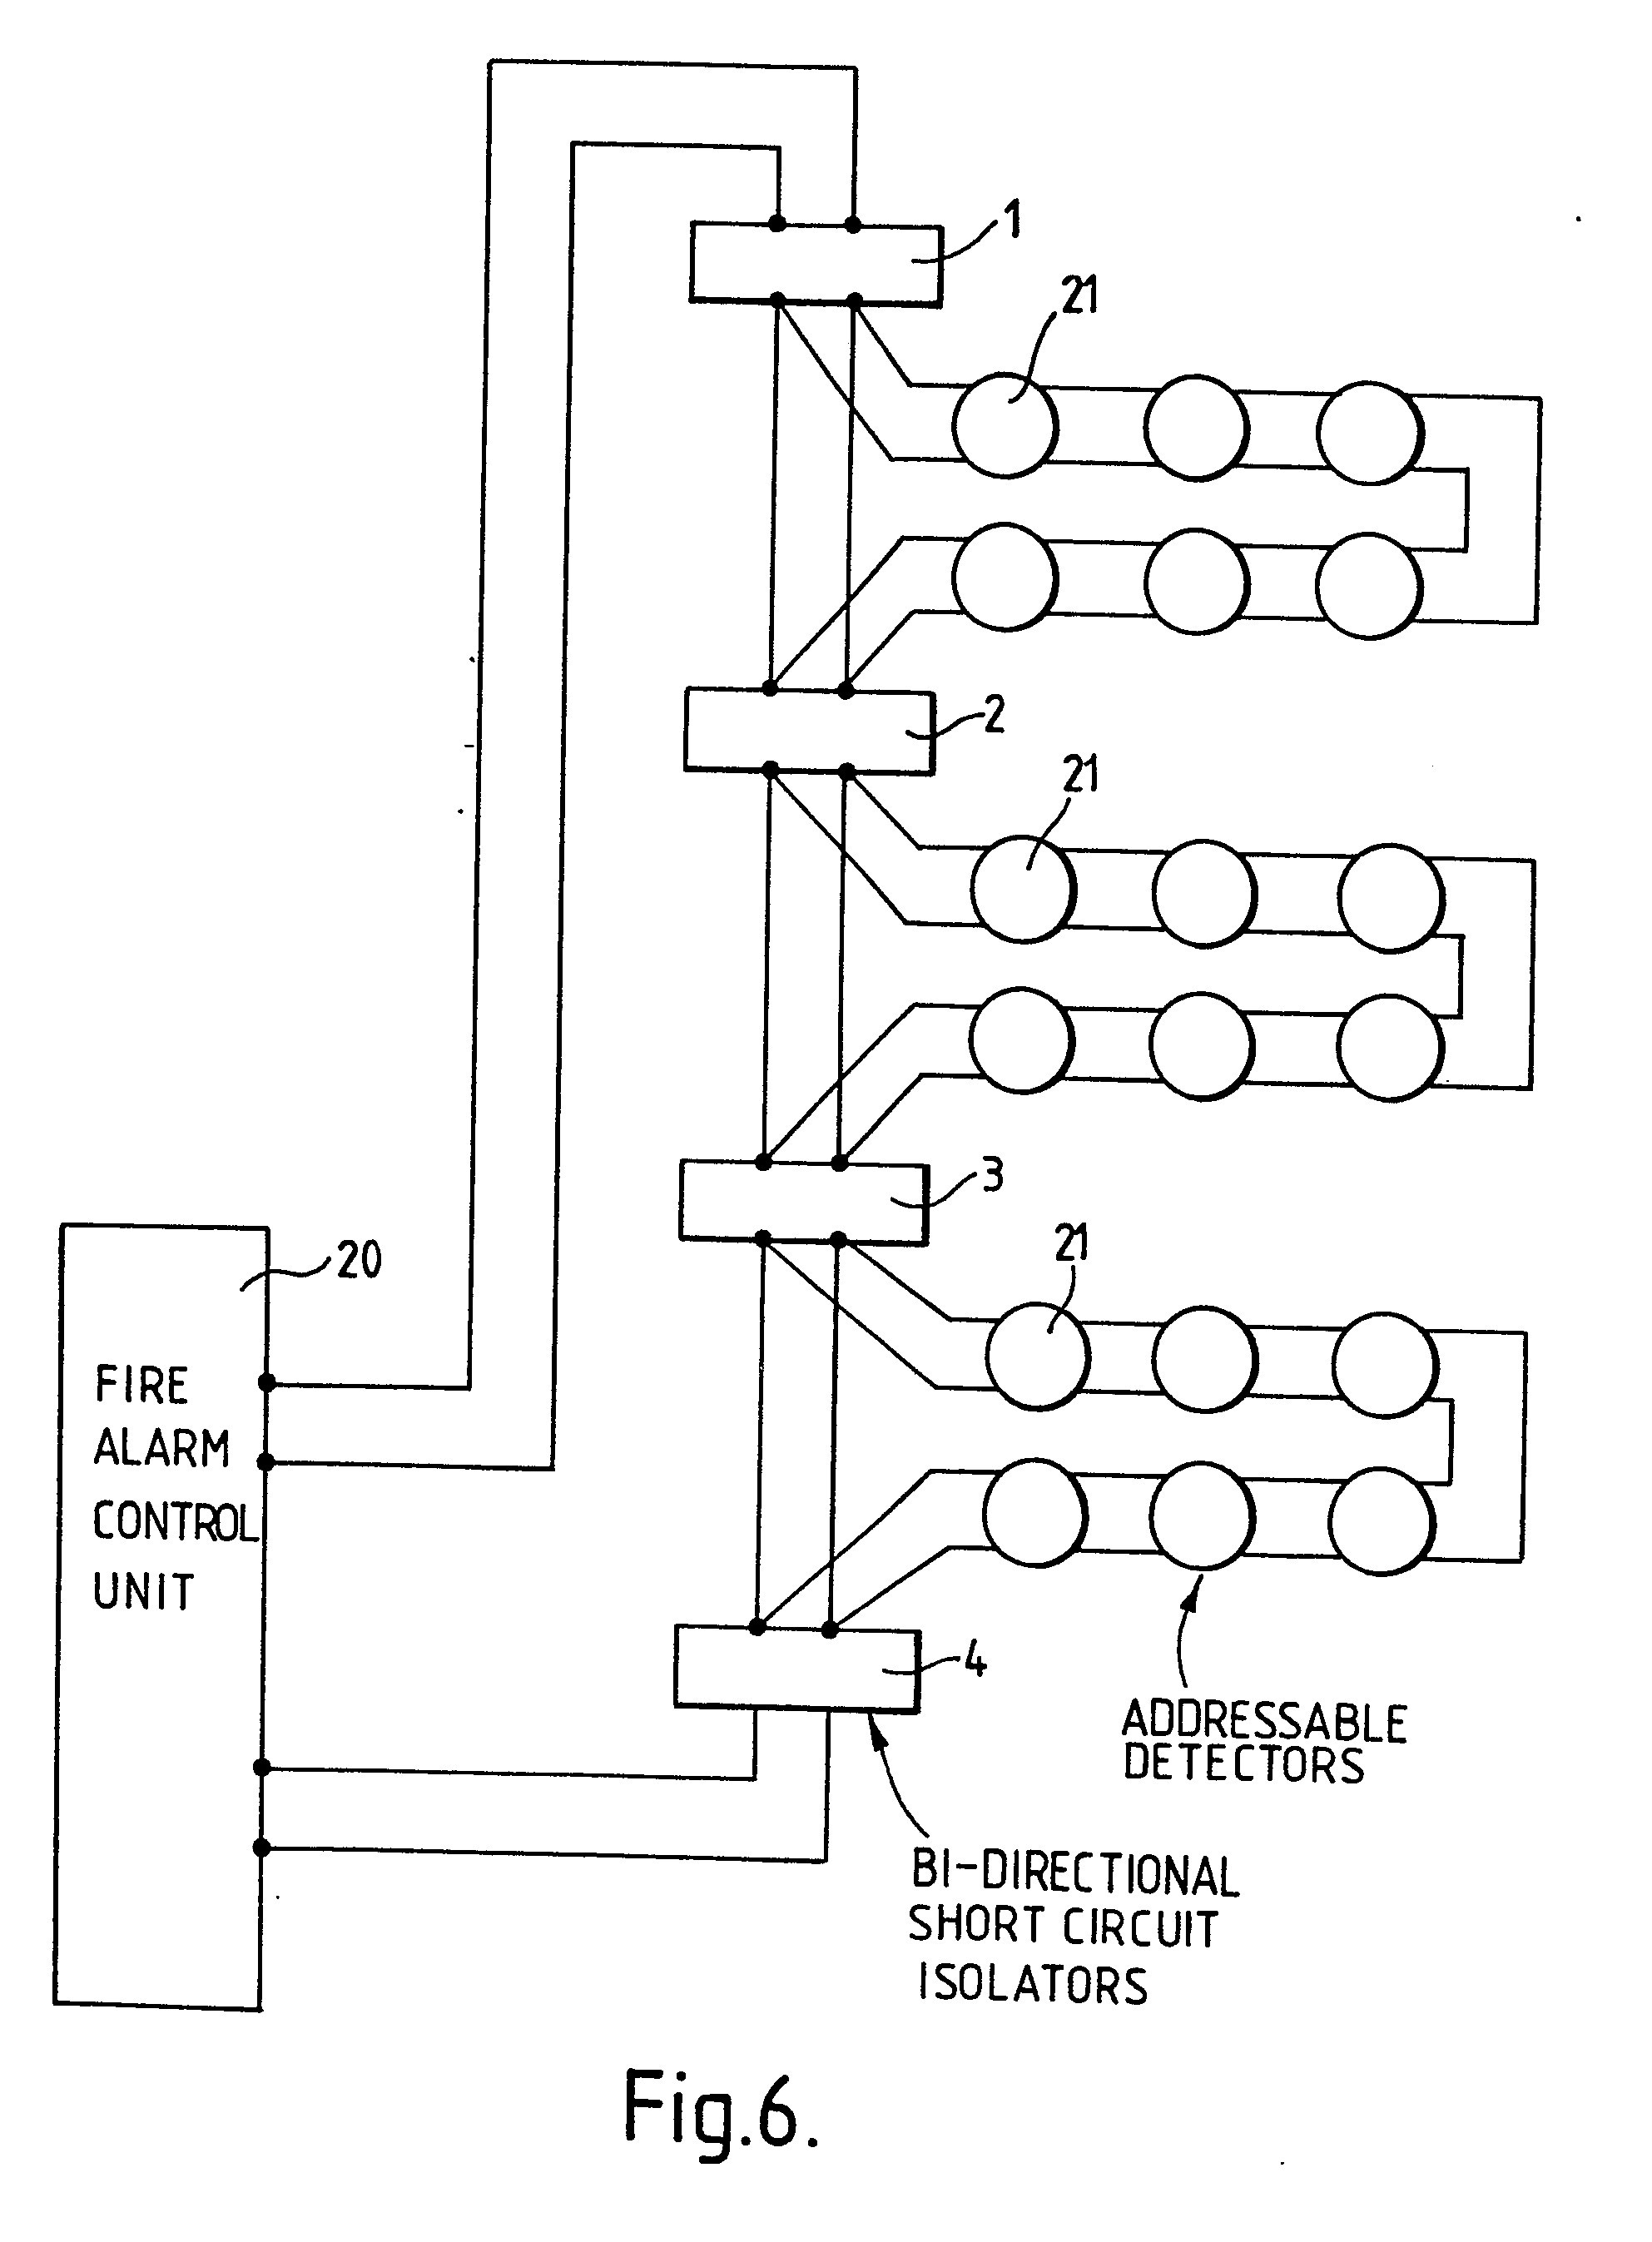 Fire Alarm System Schematic Diagram On Fire Alarm Wiring Diagram - Fire alarm wiring diagram